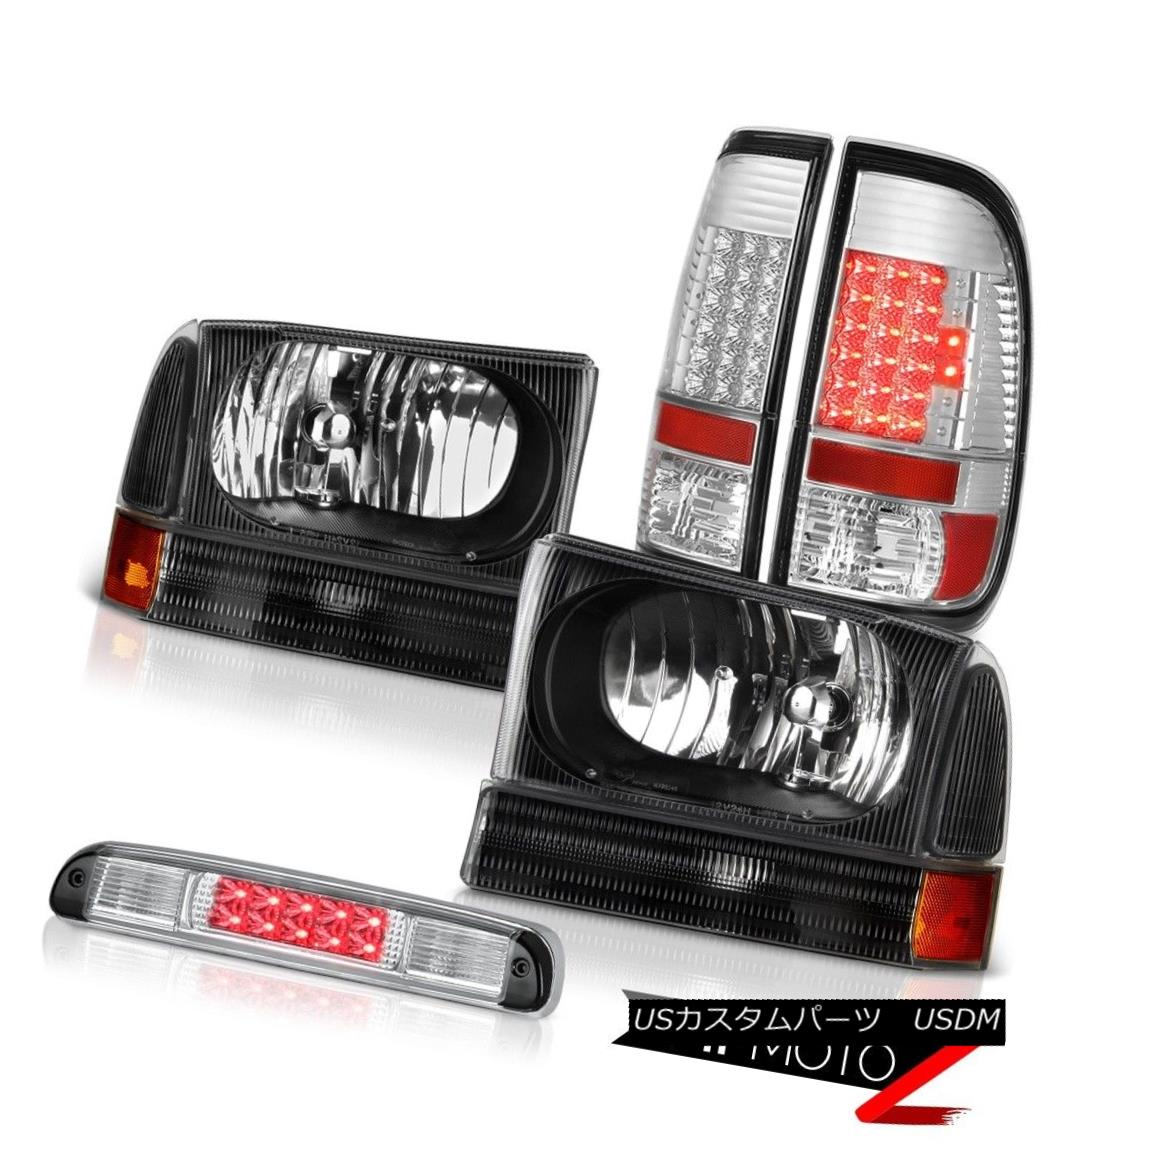 ヘッドライト Inky Black Headlights SMD Tail Lights Roof Stop LED Clear 99-04 Ford SuperDuty Inky BlackヘッドライトSMDテールライトルーフストップLED Clear 99-04 Ford SuperDuty